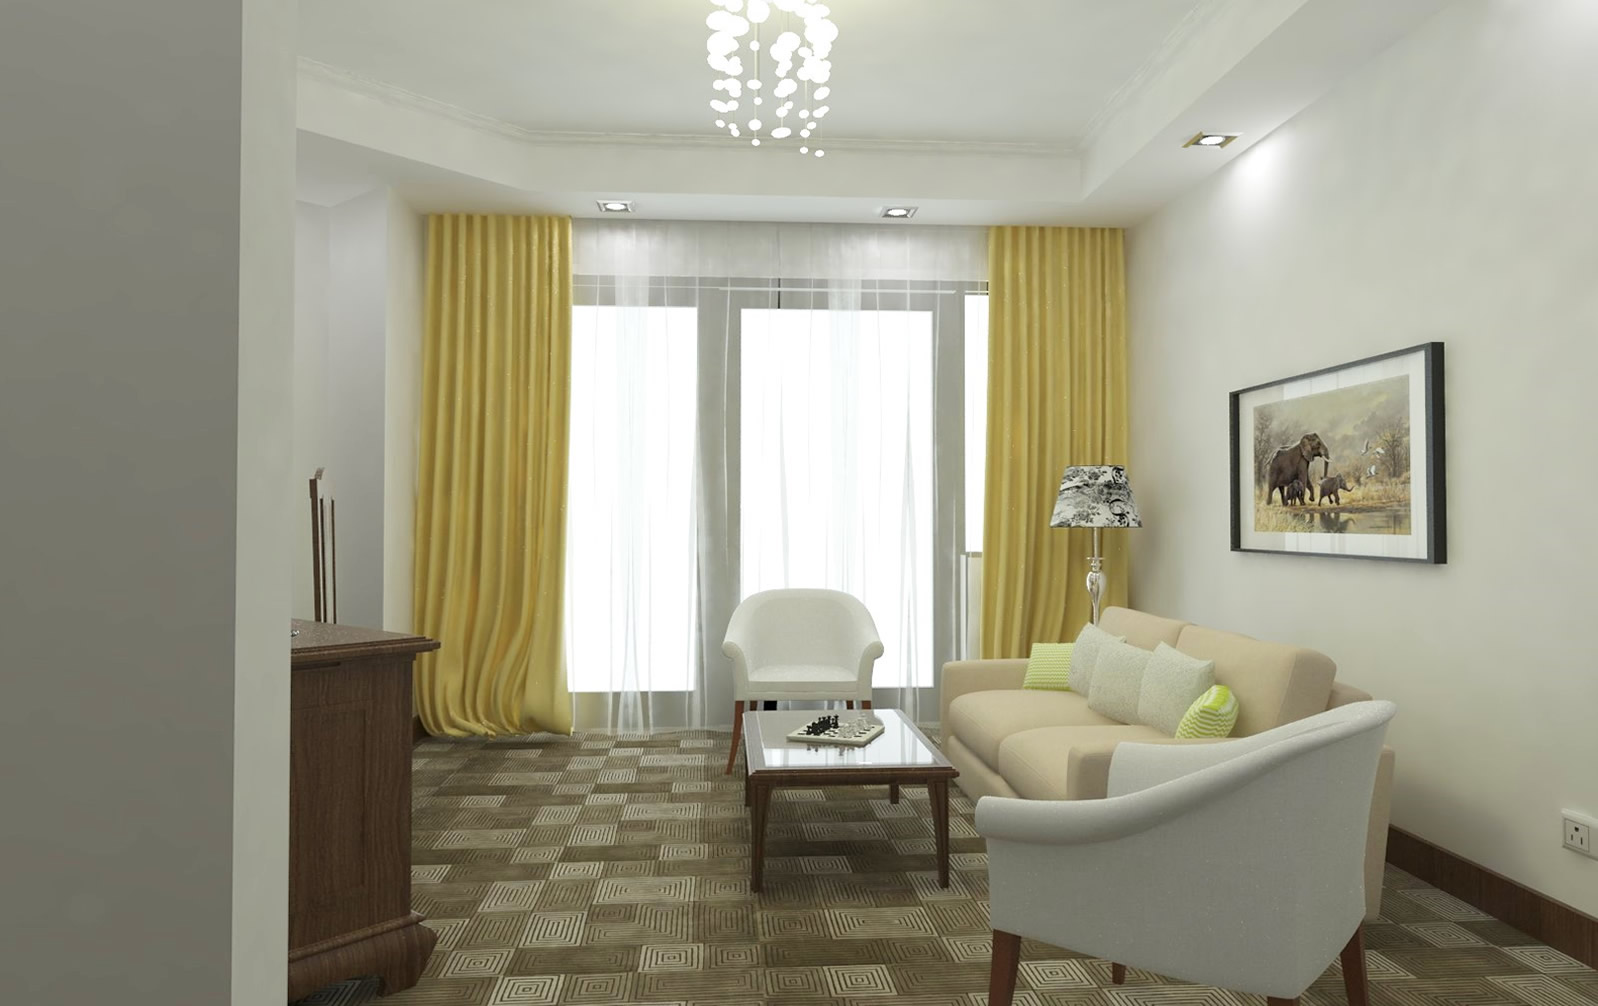 Beautiful INHOUSE   INTERIOR DESIGN SERVICES IN NAIROBI KENYA, EAST AFRICA,INTERIOR  FURNISHING AND FIT OUT SERVICES,DESIGN AND BUILD | Home